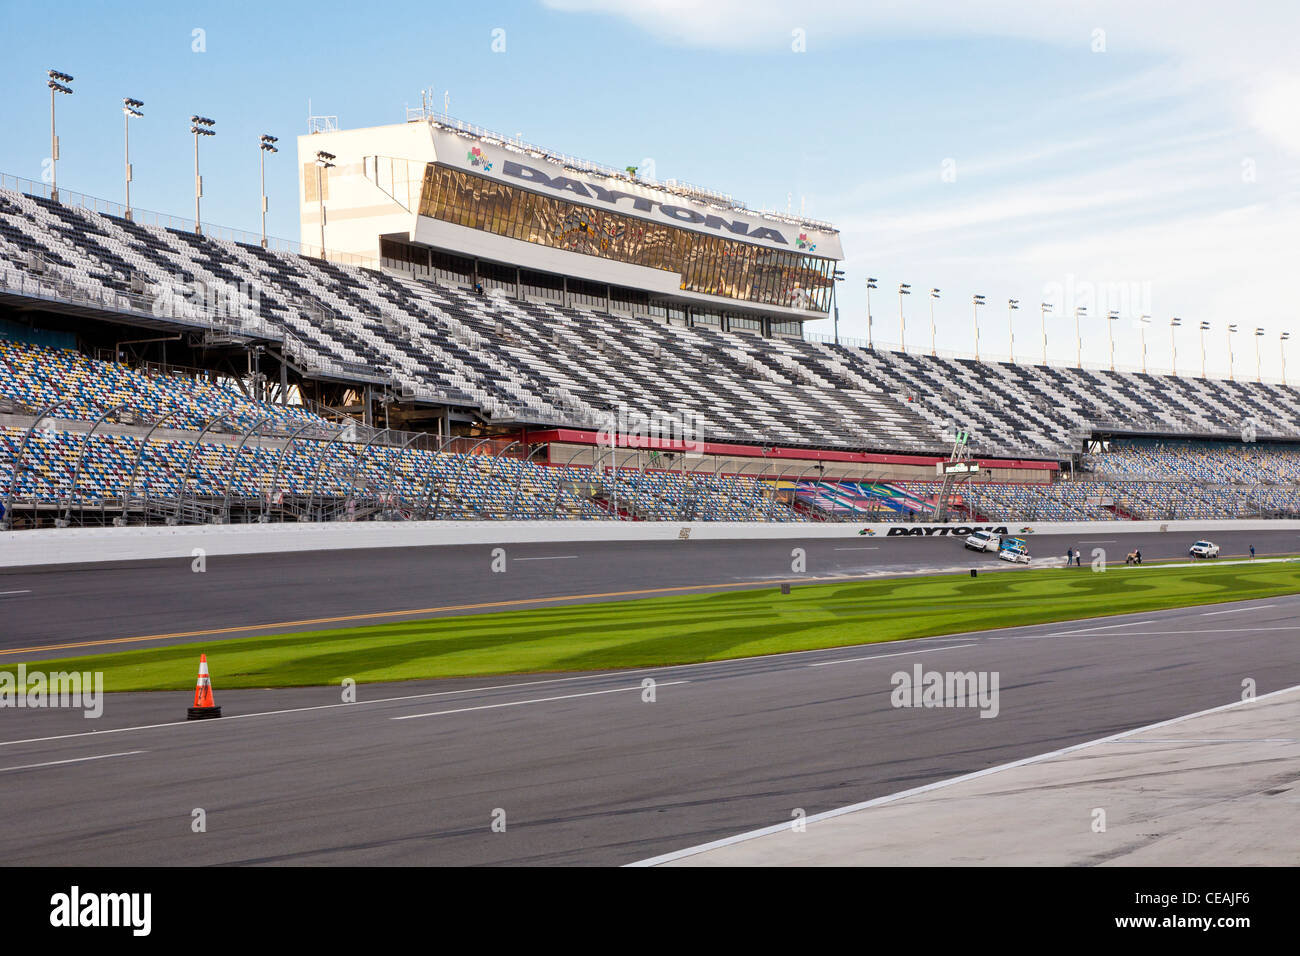 Main Grandstands on front stretch of the Daytona International Speedway - Stock Image